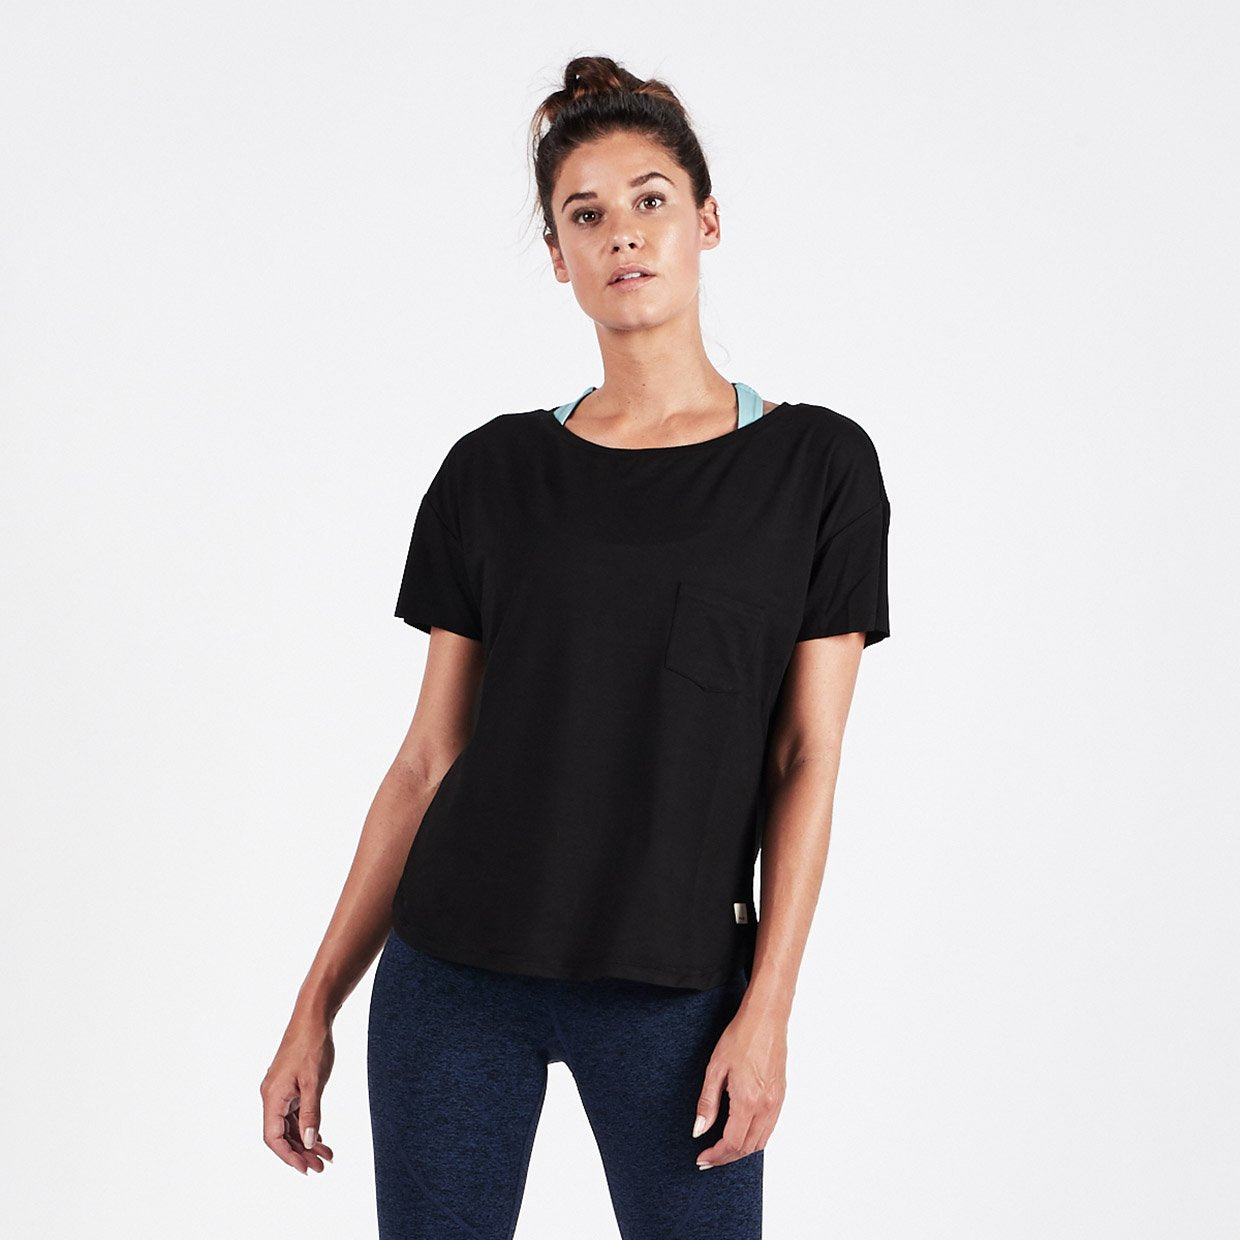 Lux Performance Tee - Black - Black 1